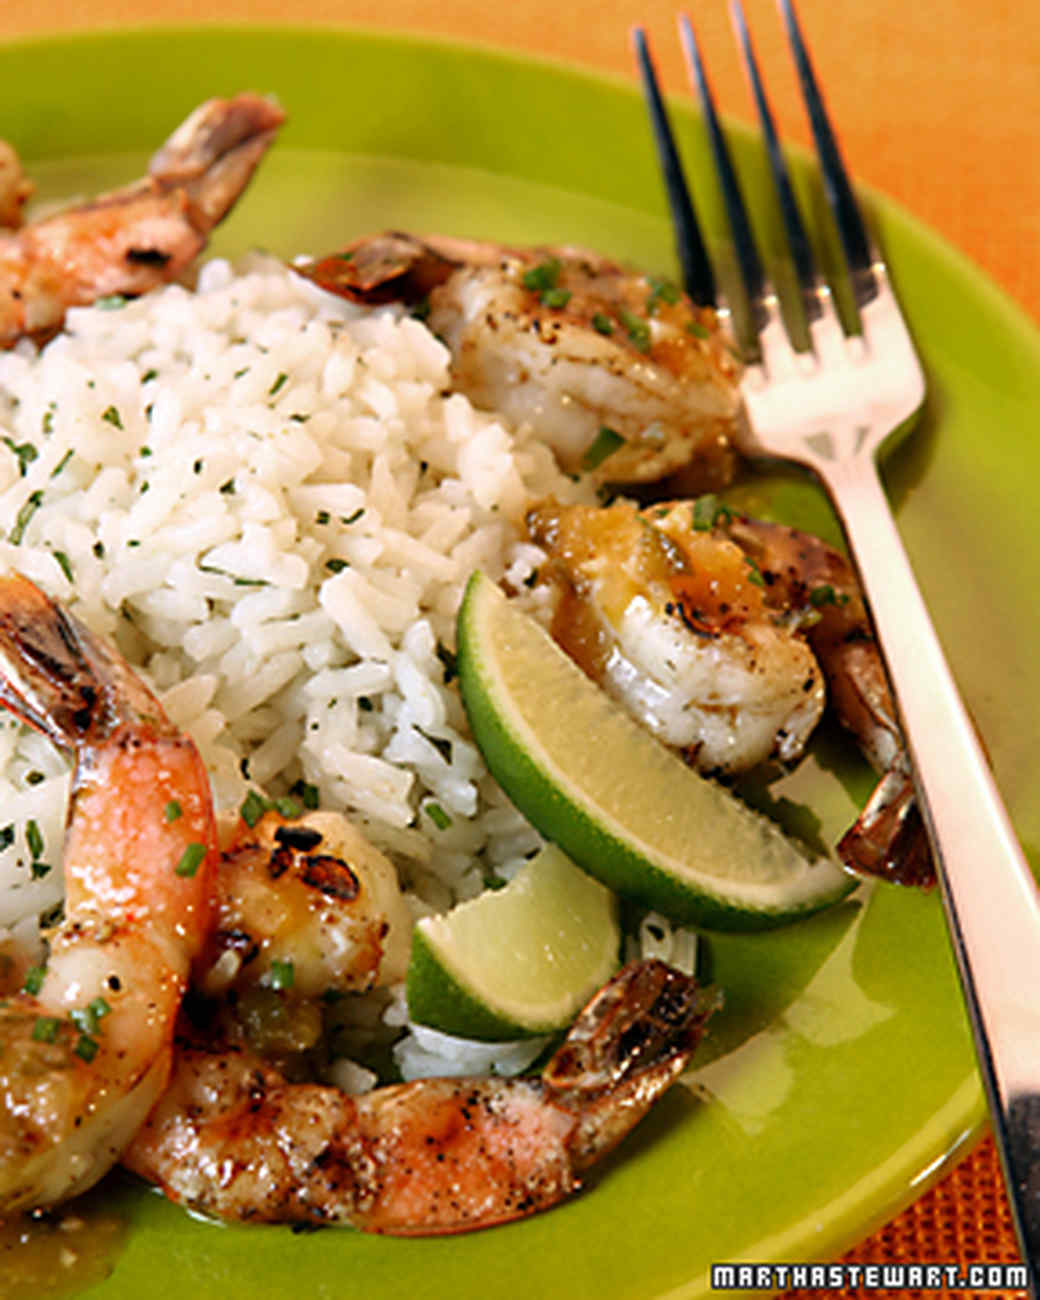 Simple supper tequila orange grilled shrimp recipe video martha simple supper tequila orange grilled shrimp recipe video martha stewart forumfinder Image collections